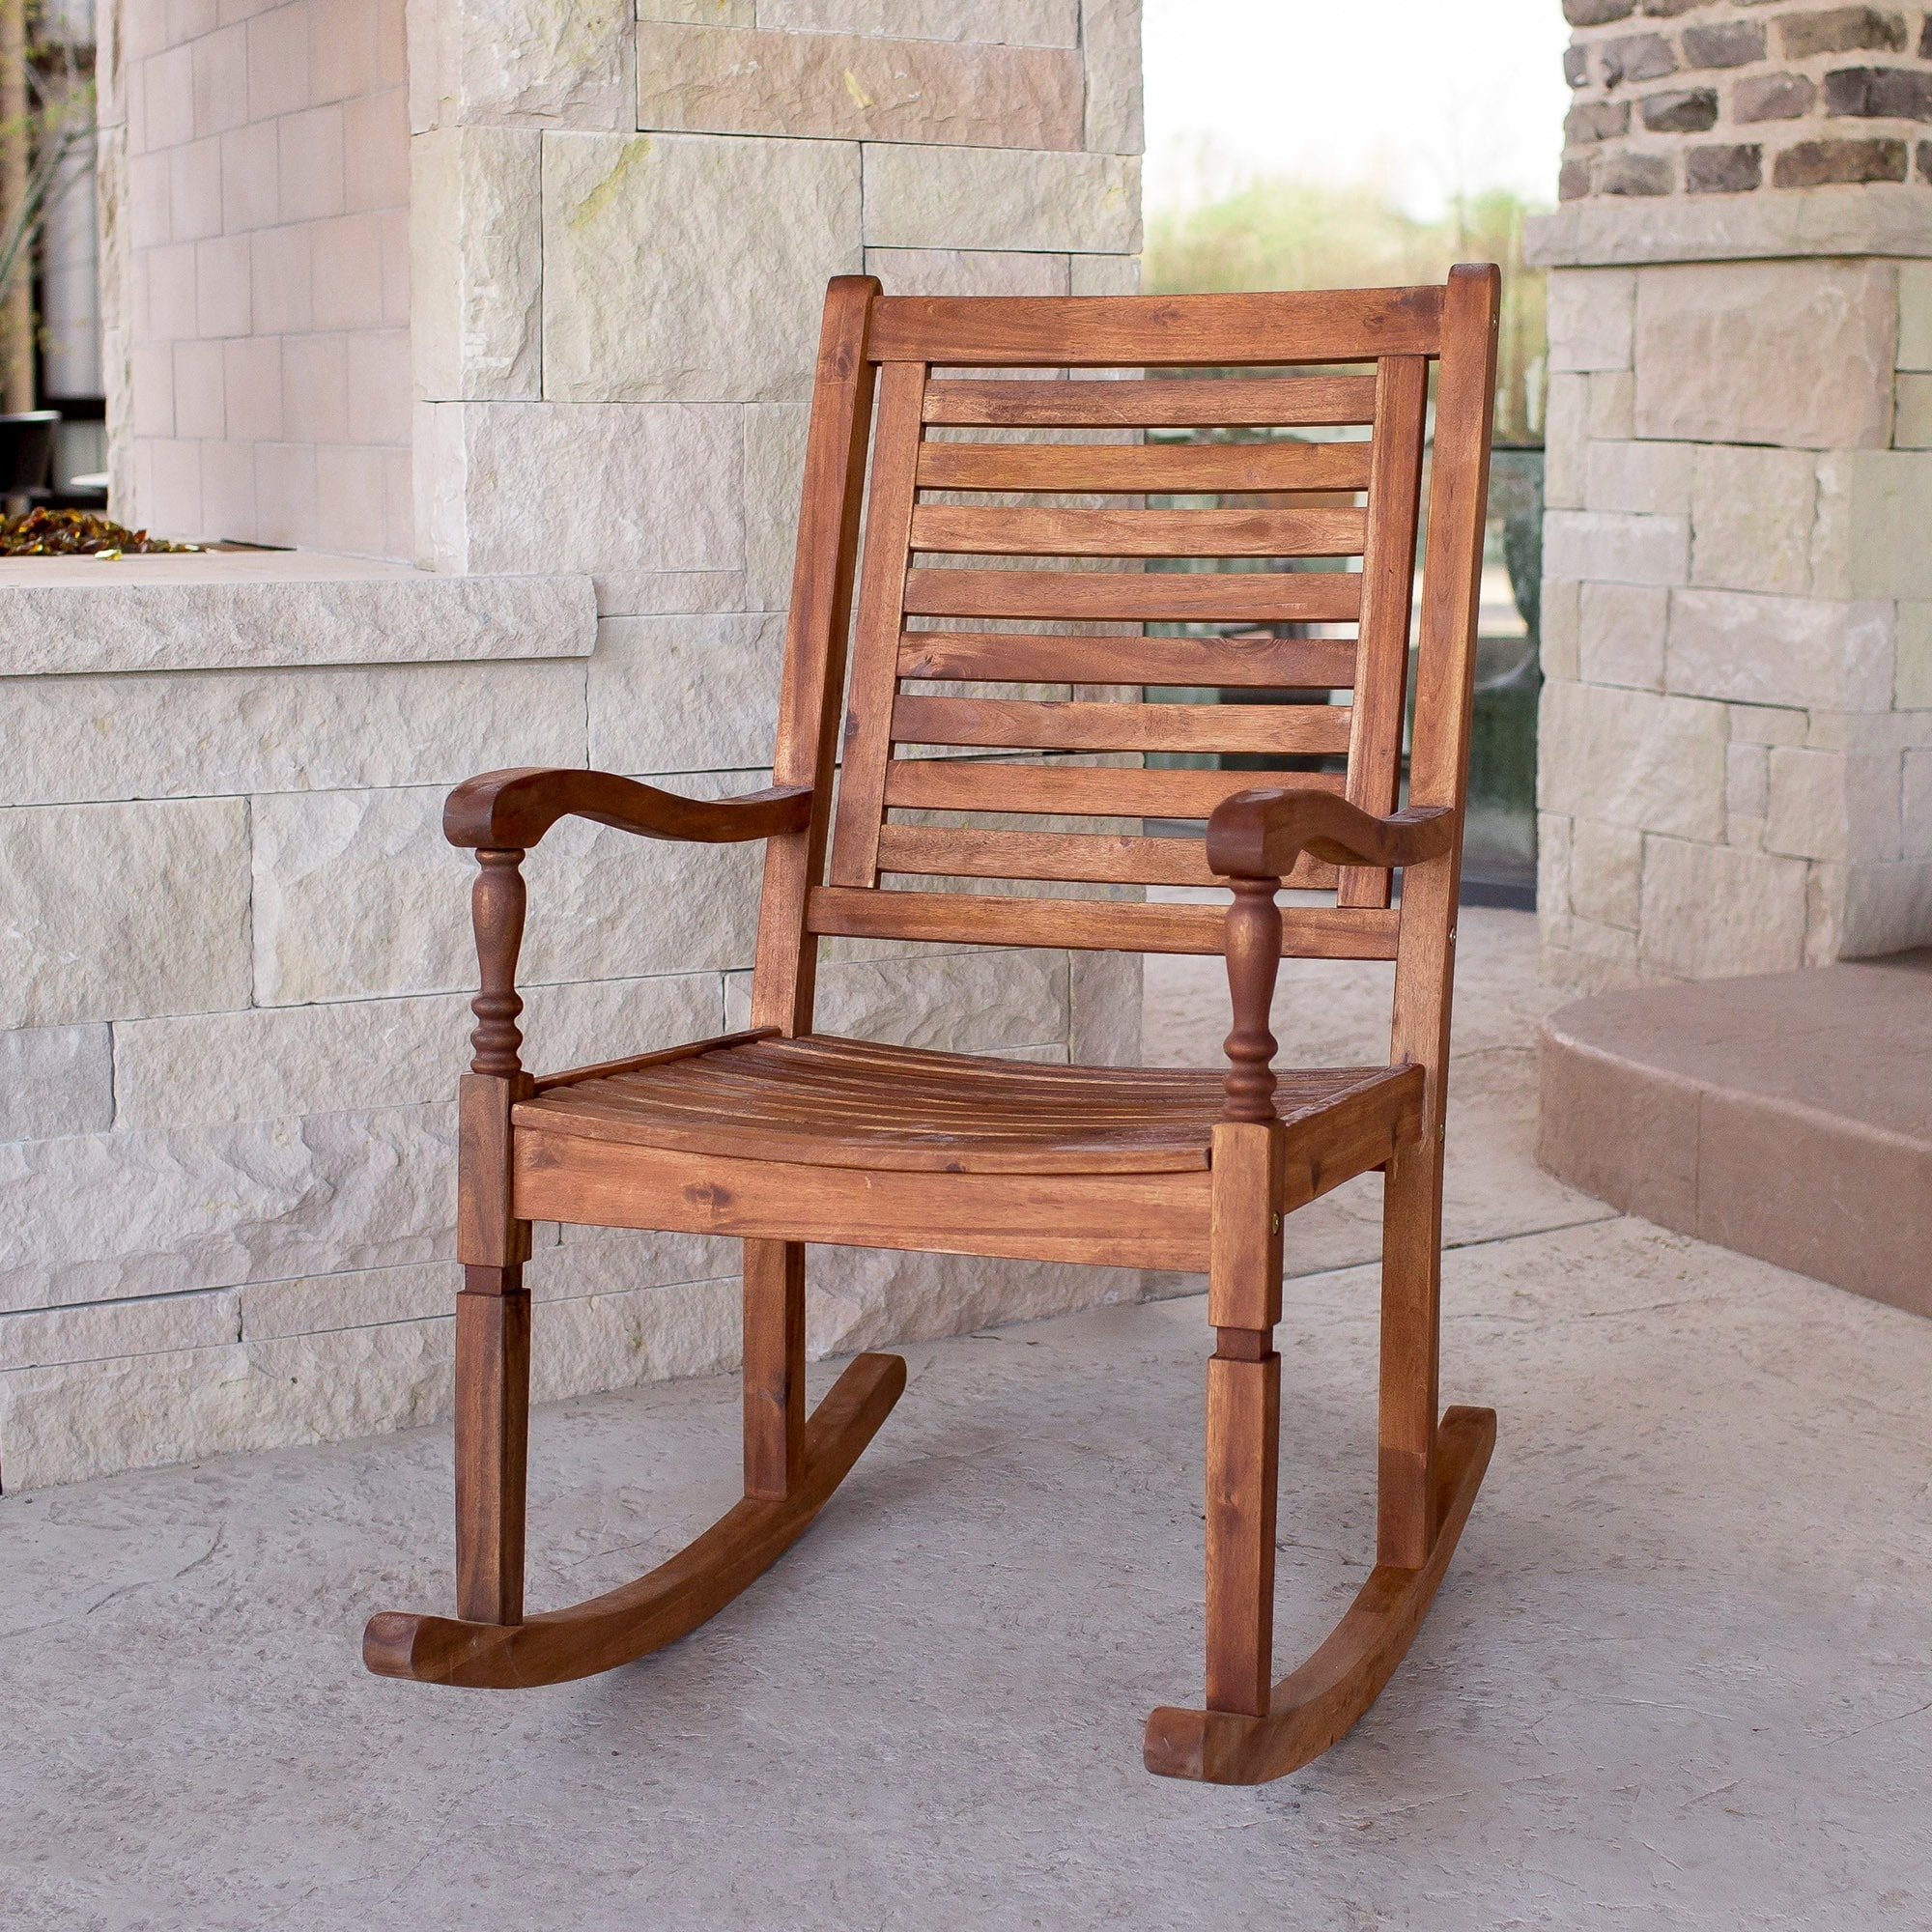 Overstock Rocking Chairs Shop Solid Acacia Wood Rocking Patio Chair Brown Free